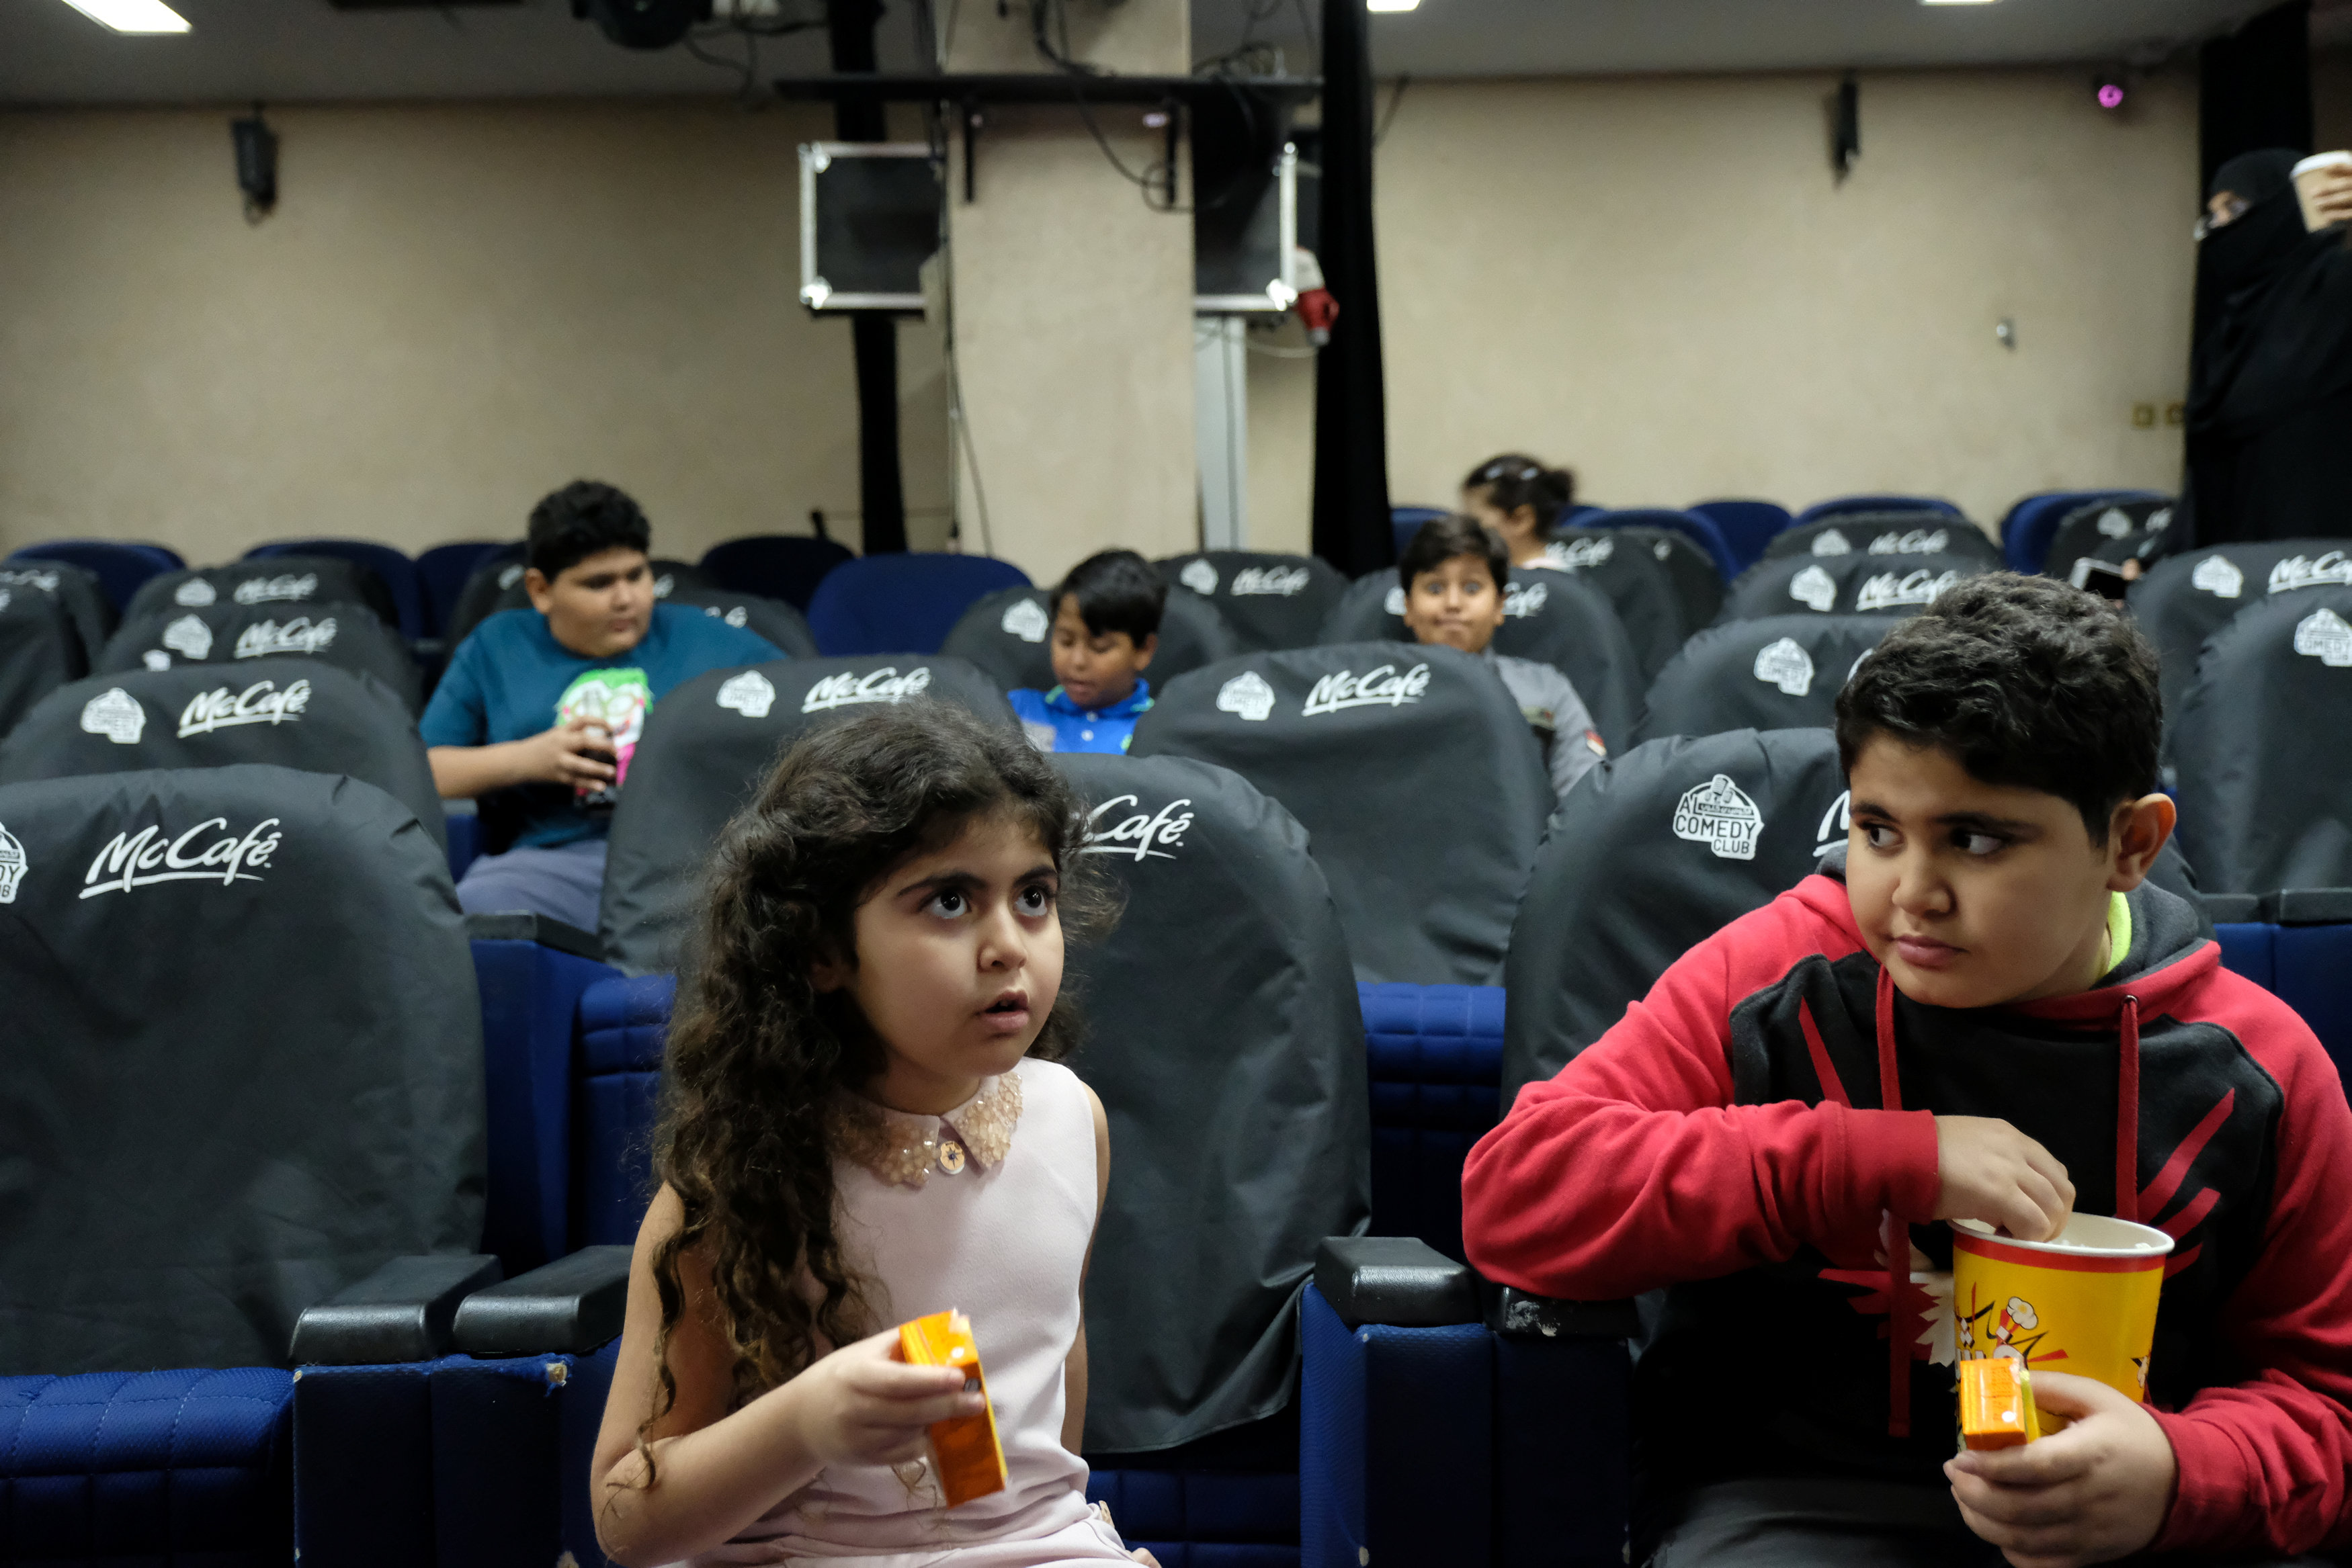 Children are seen inside the first Saudi Arabia cinema in Jeddah, Saudi Arabia January 13, 2018. Picture taken January 13, 2018.